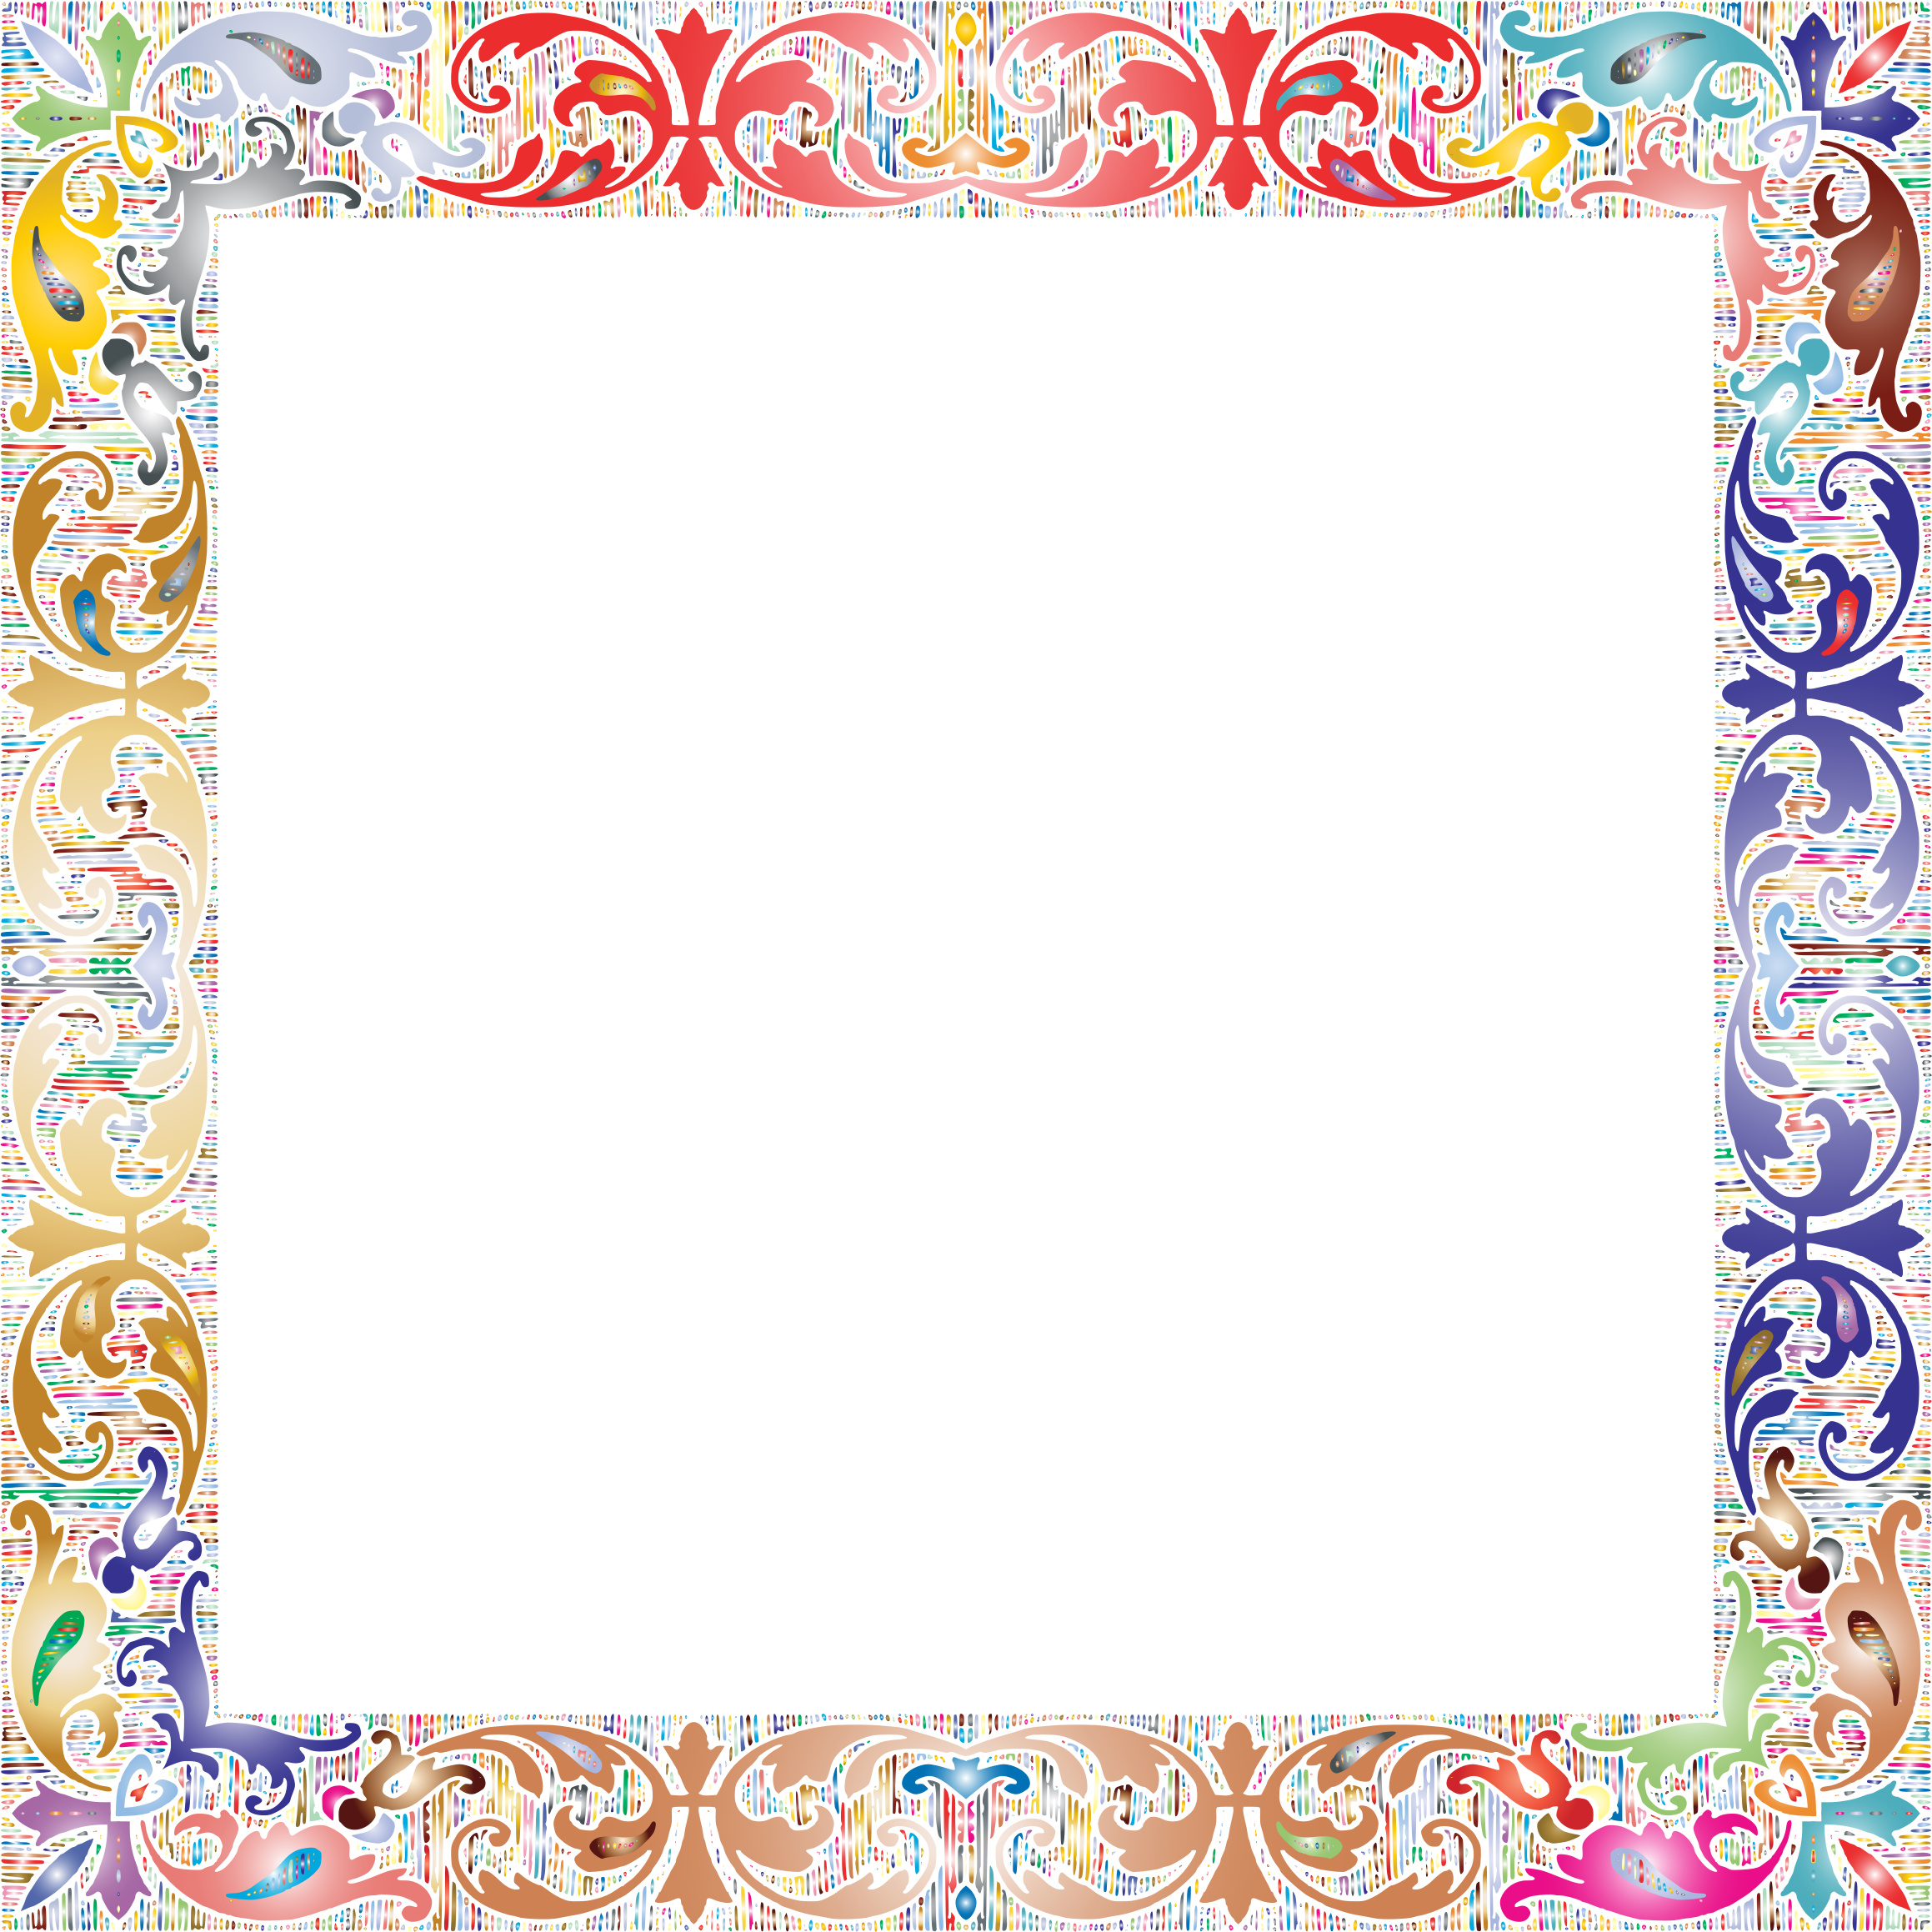 Square picture frame png. Fancy vintage prismatic no